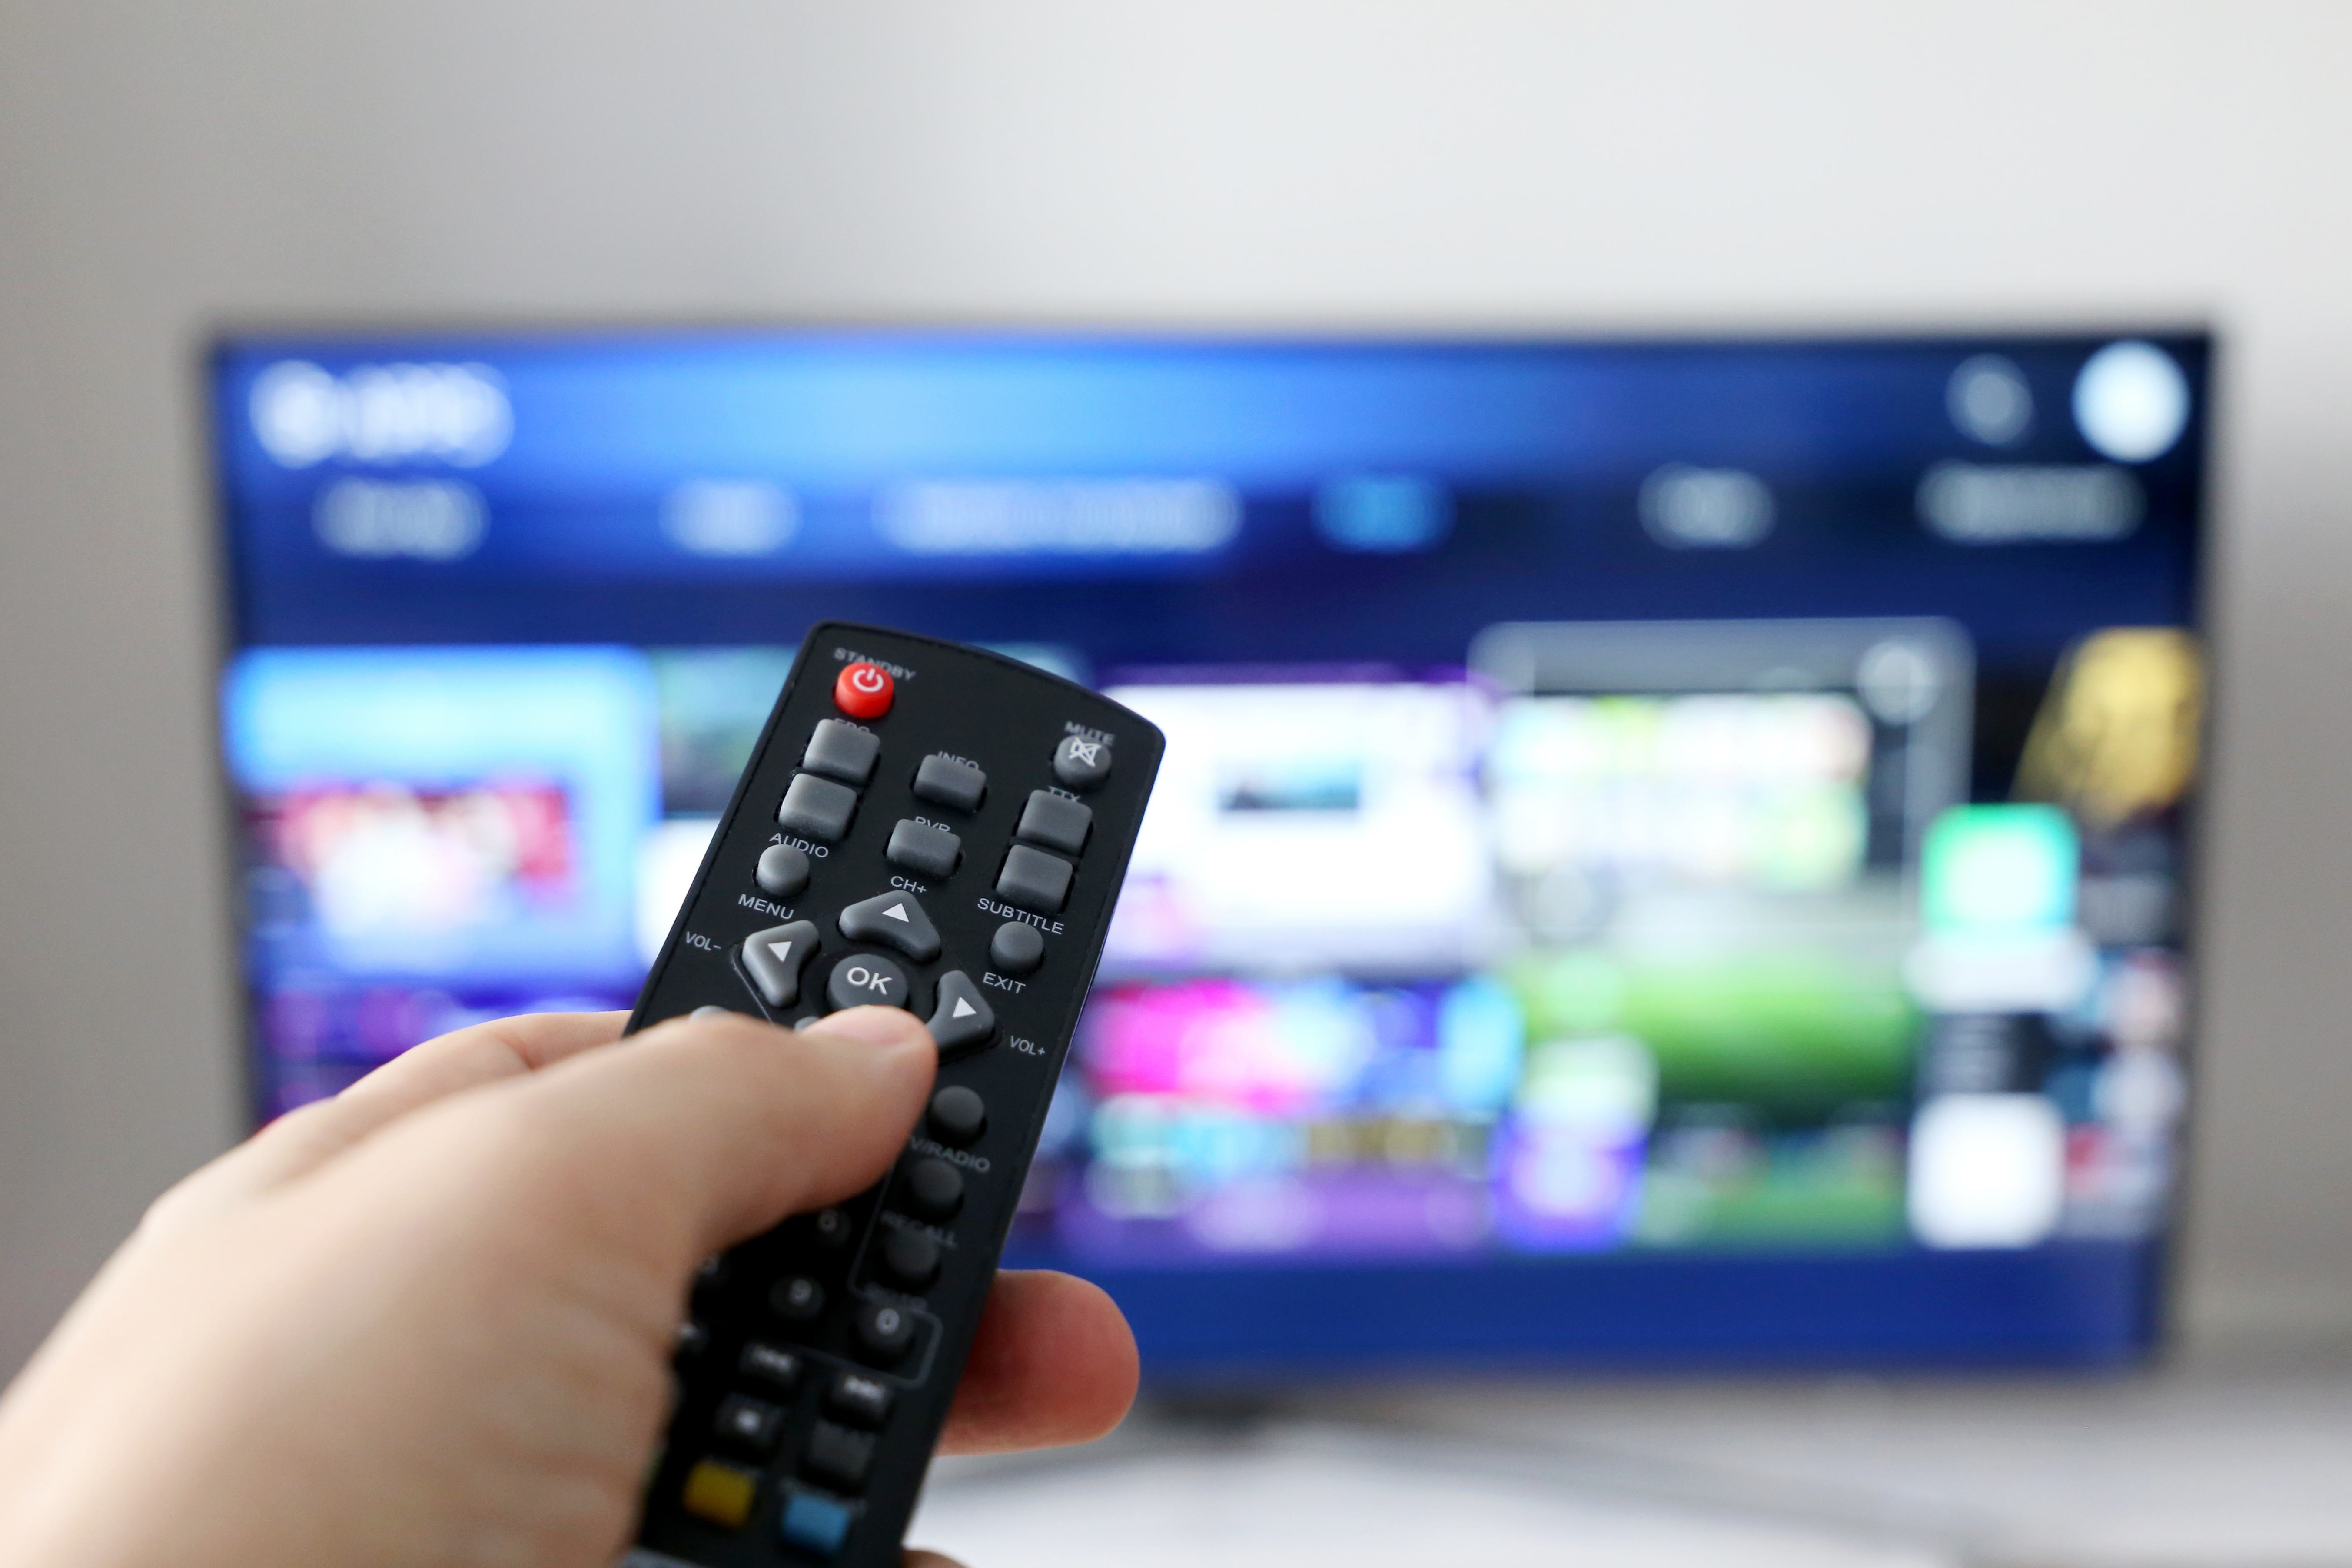 Hand holding a remote control in front of a TV